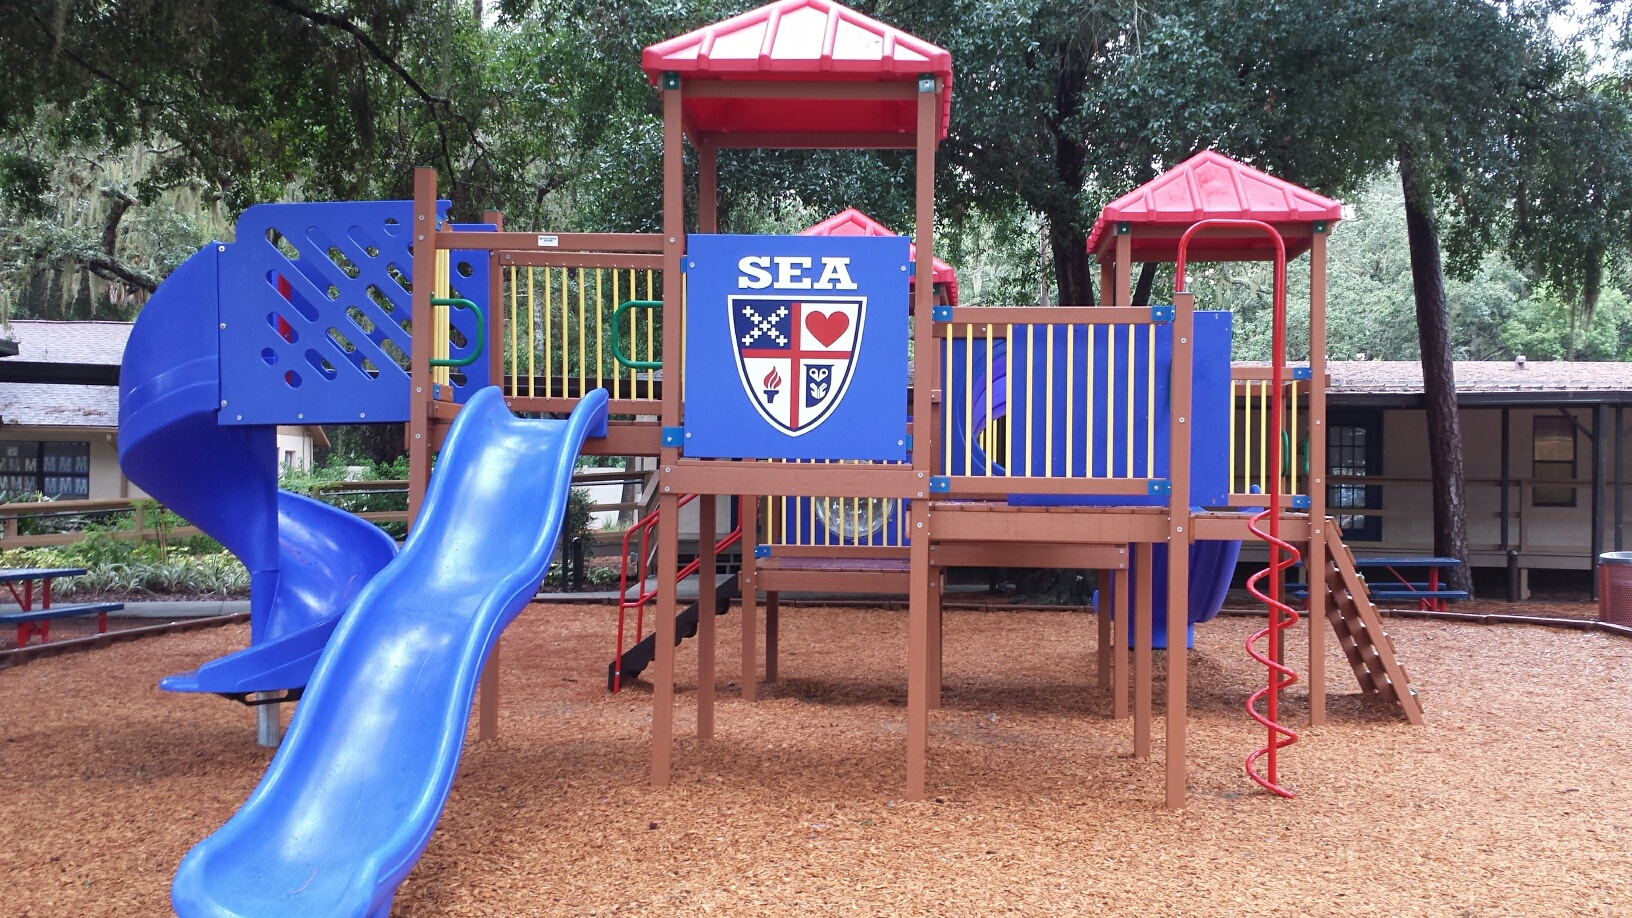 sweetwater episcopal longwood - Commercial Playground Equipment